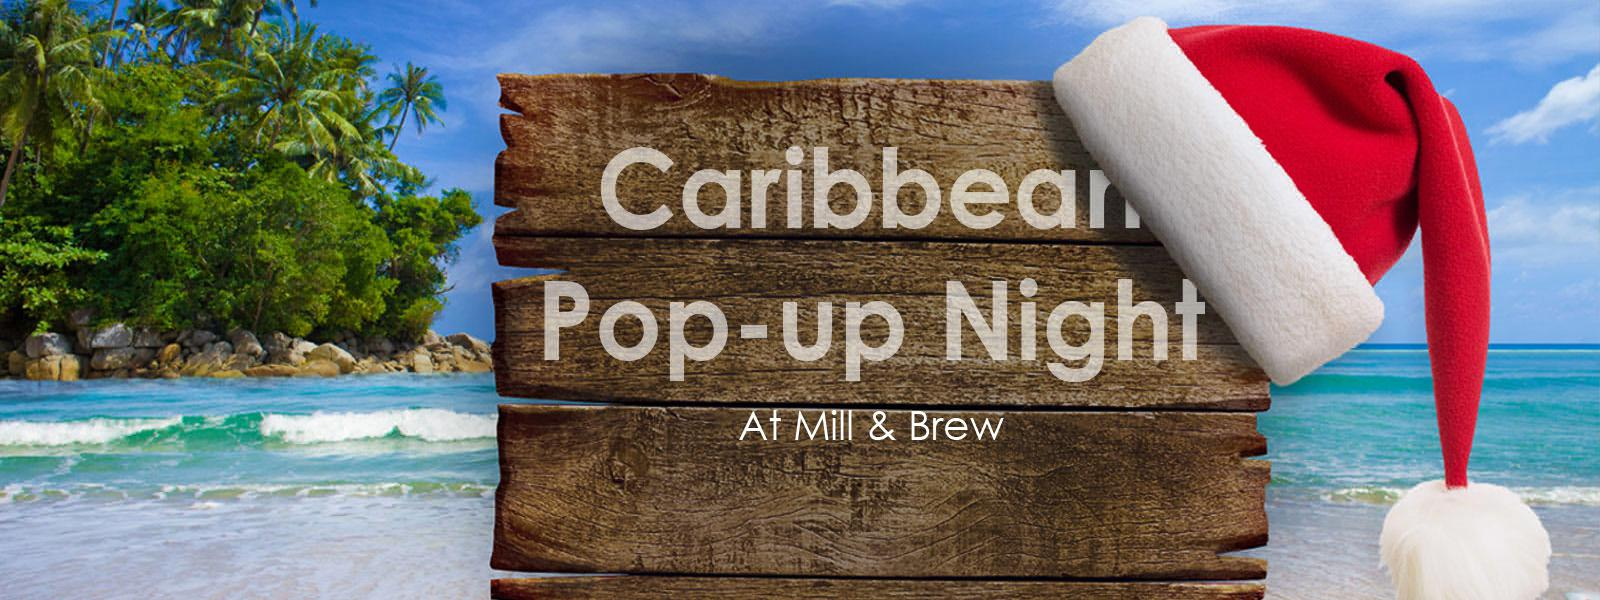 Caribbean Pop-up Night